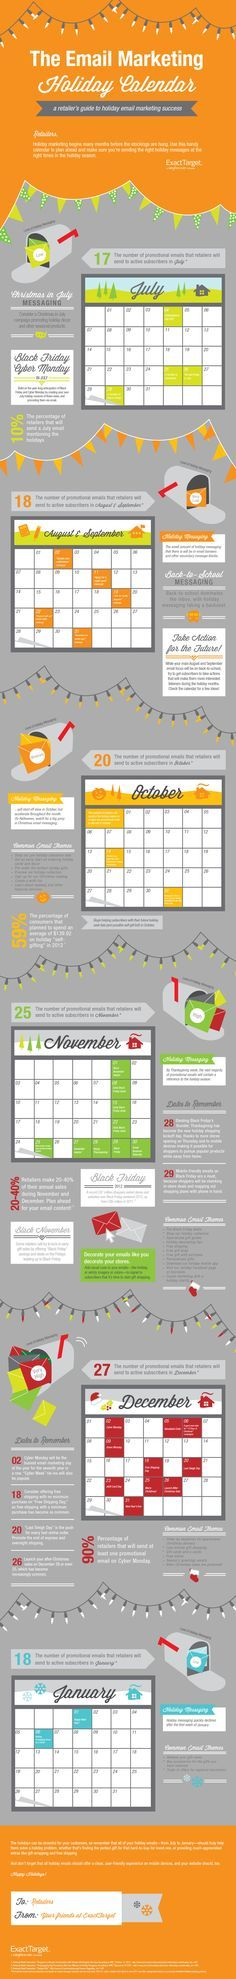 38 best Marketing Calendar images on Pinterest Marketing - sample marketing calendar